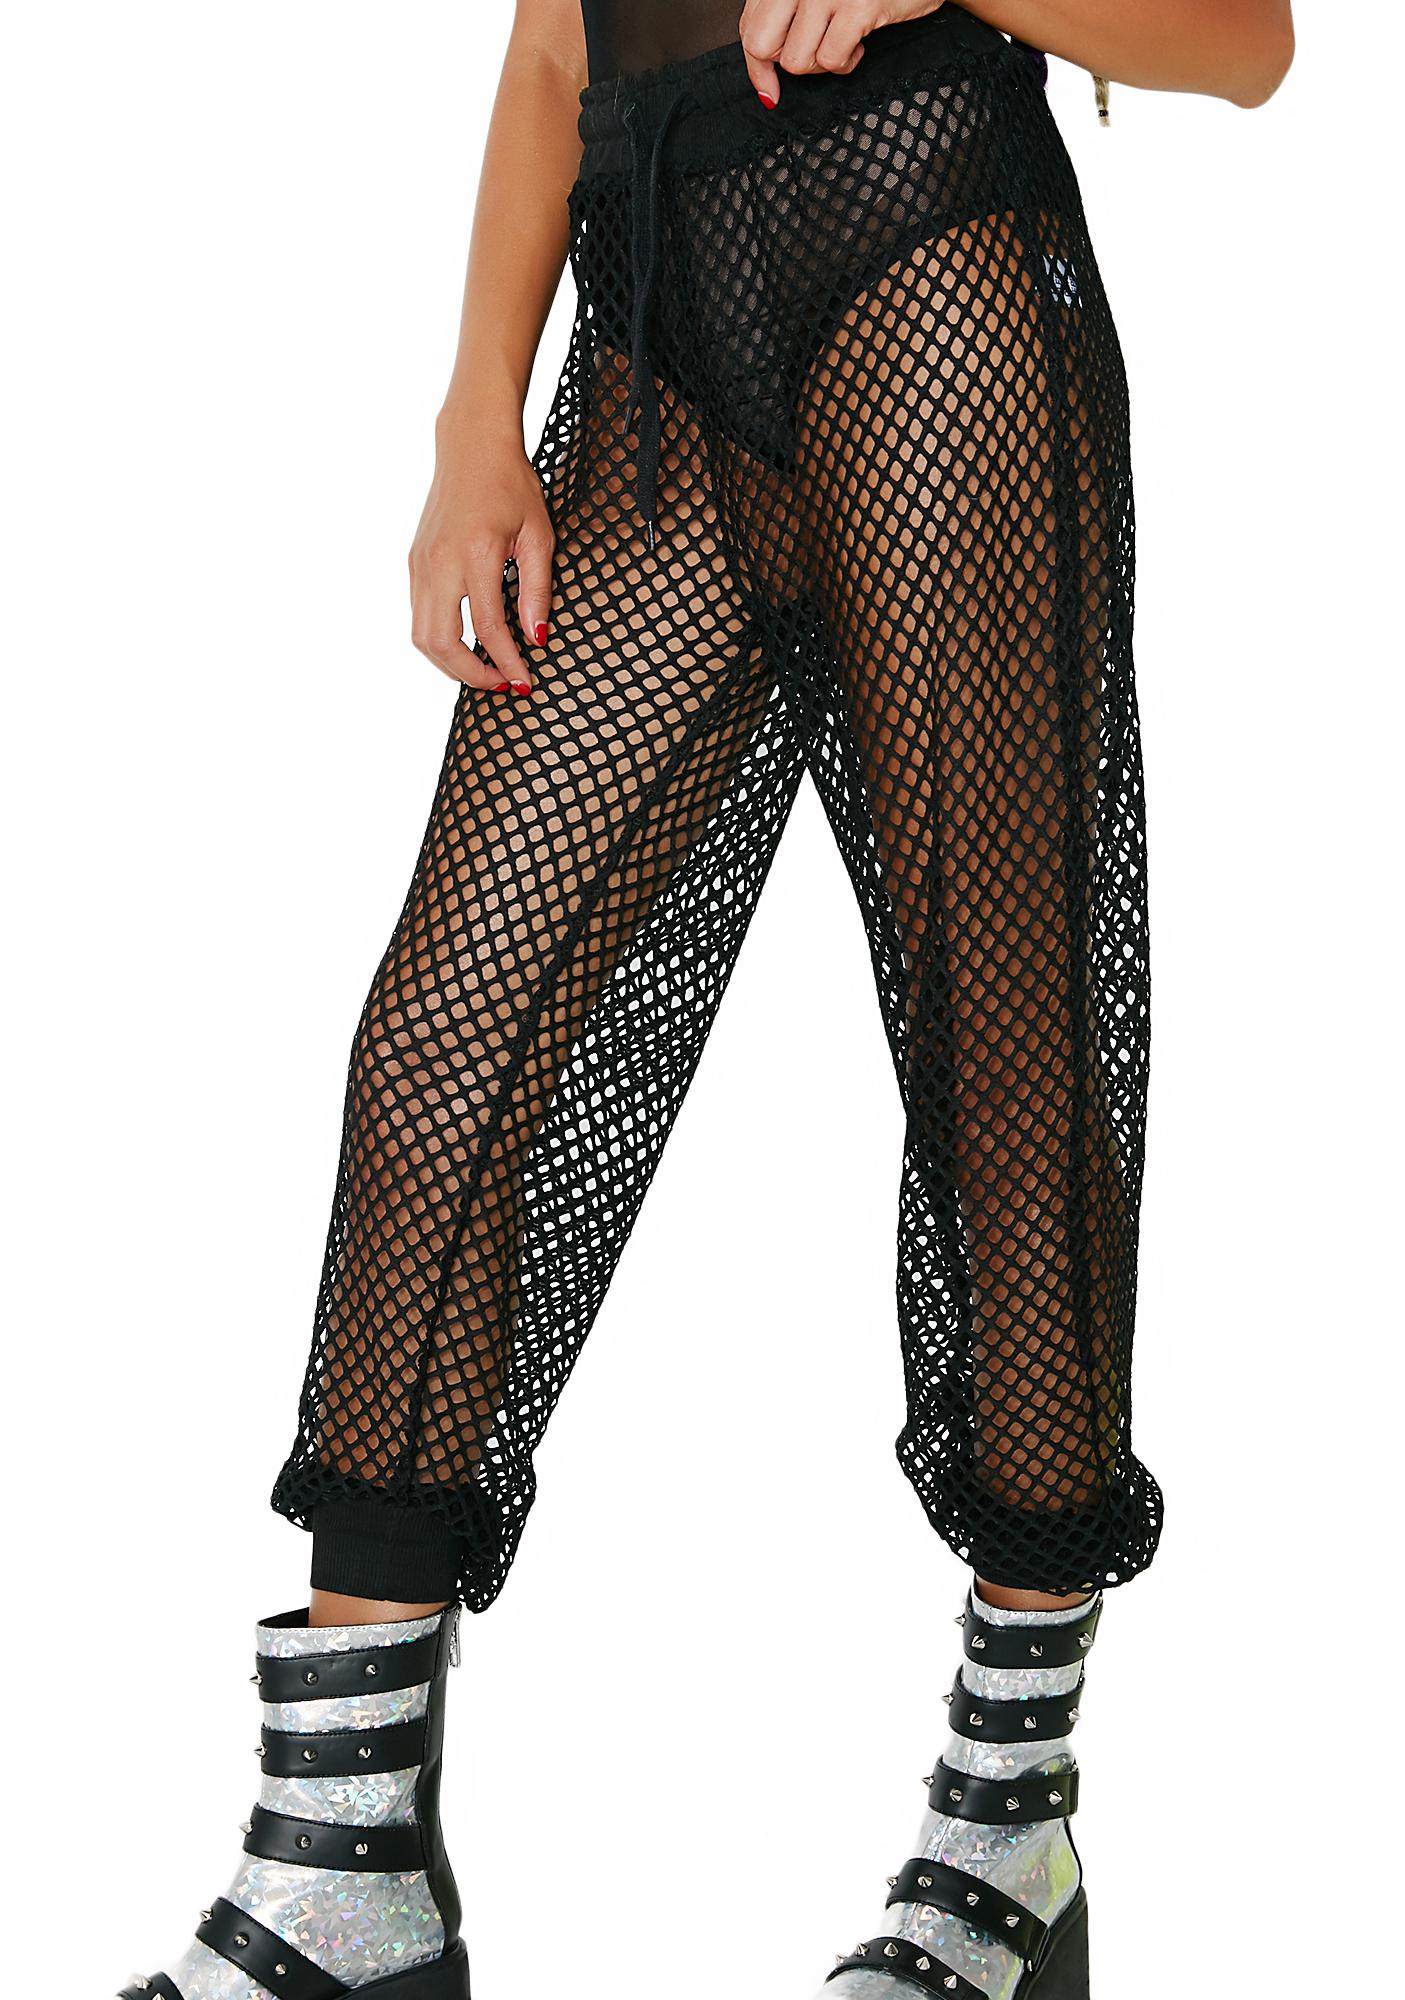 Club Exx Burn Baby Mesh Pants